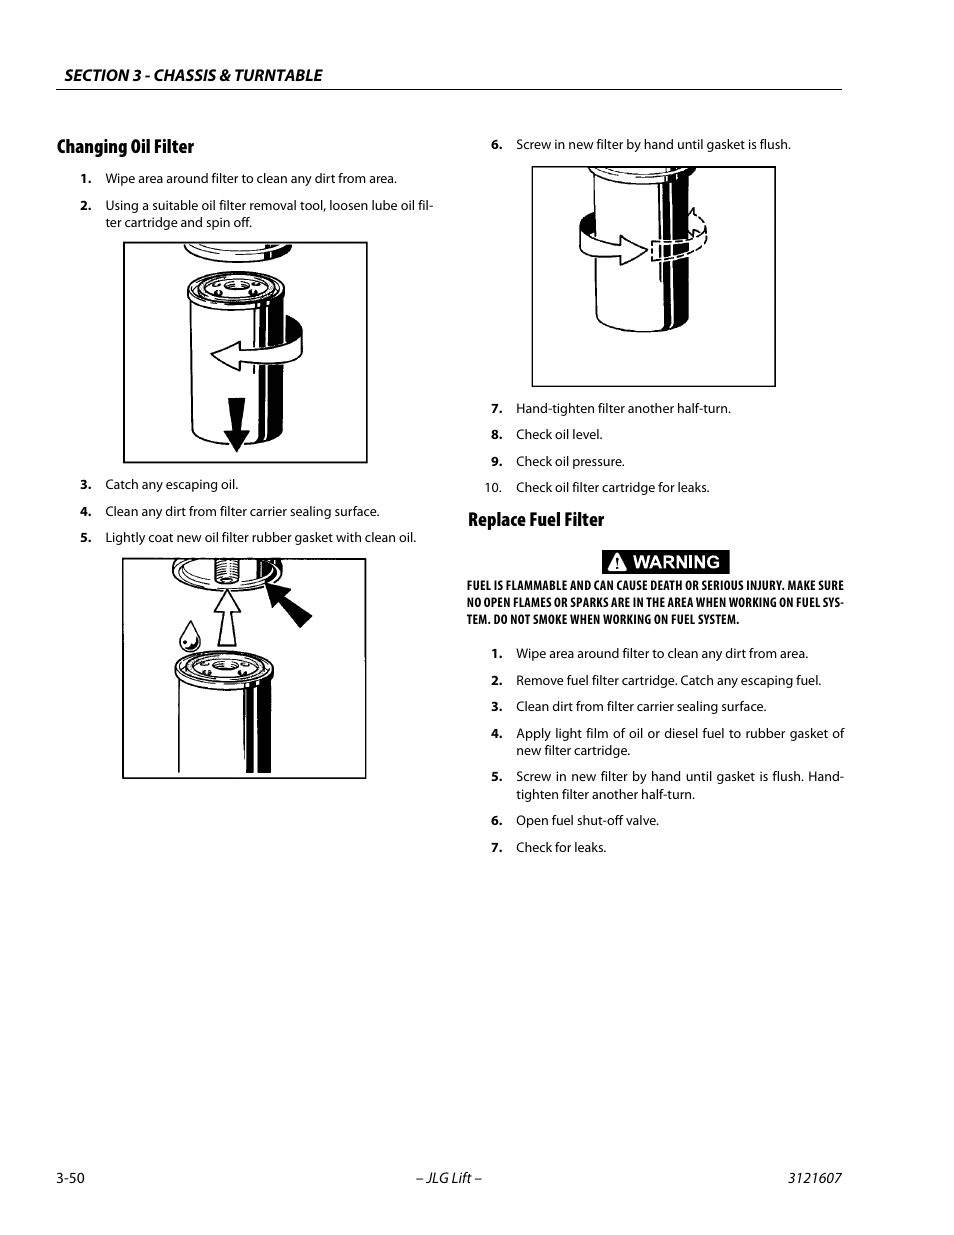 Changing Oil Filter Replace Fuel 50 6 7 Powerstroke Jlg 600sc 660sjc Service Manual User Page 86 270